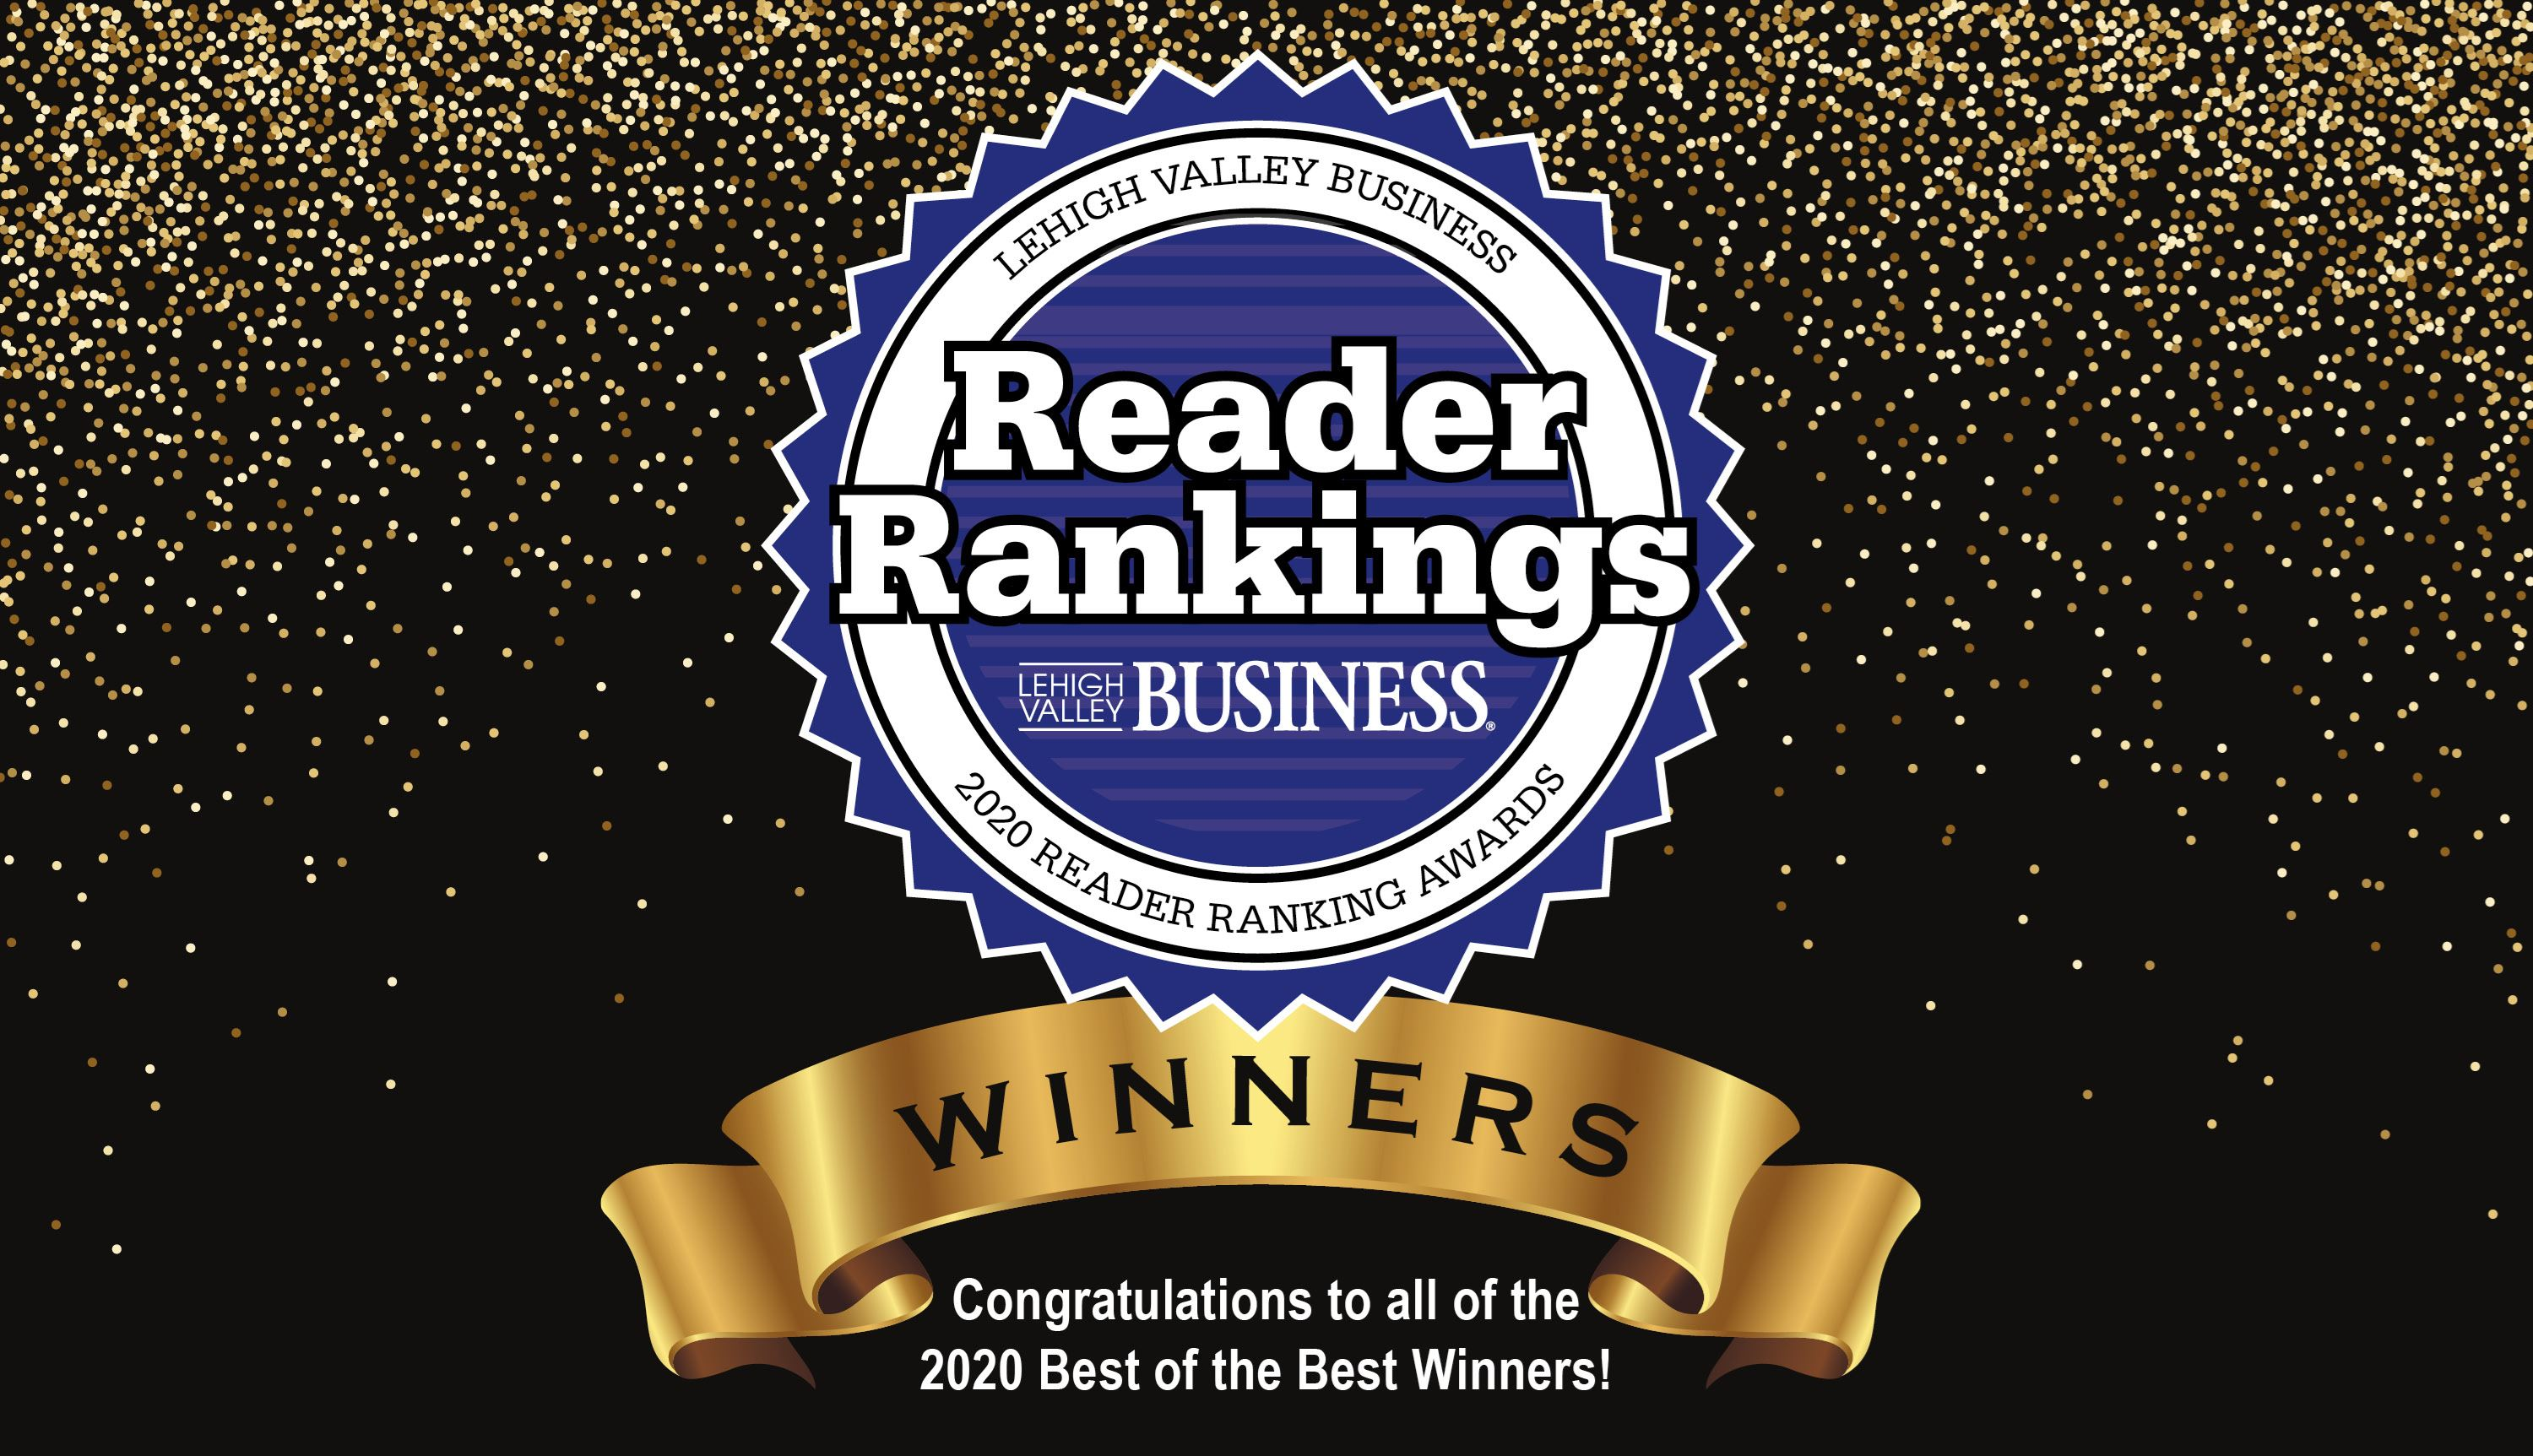 2020 Lehigh Valley Business Reader Rankings Finalists